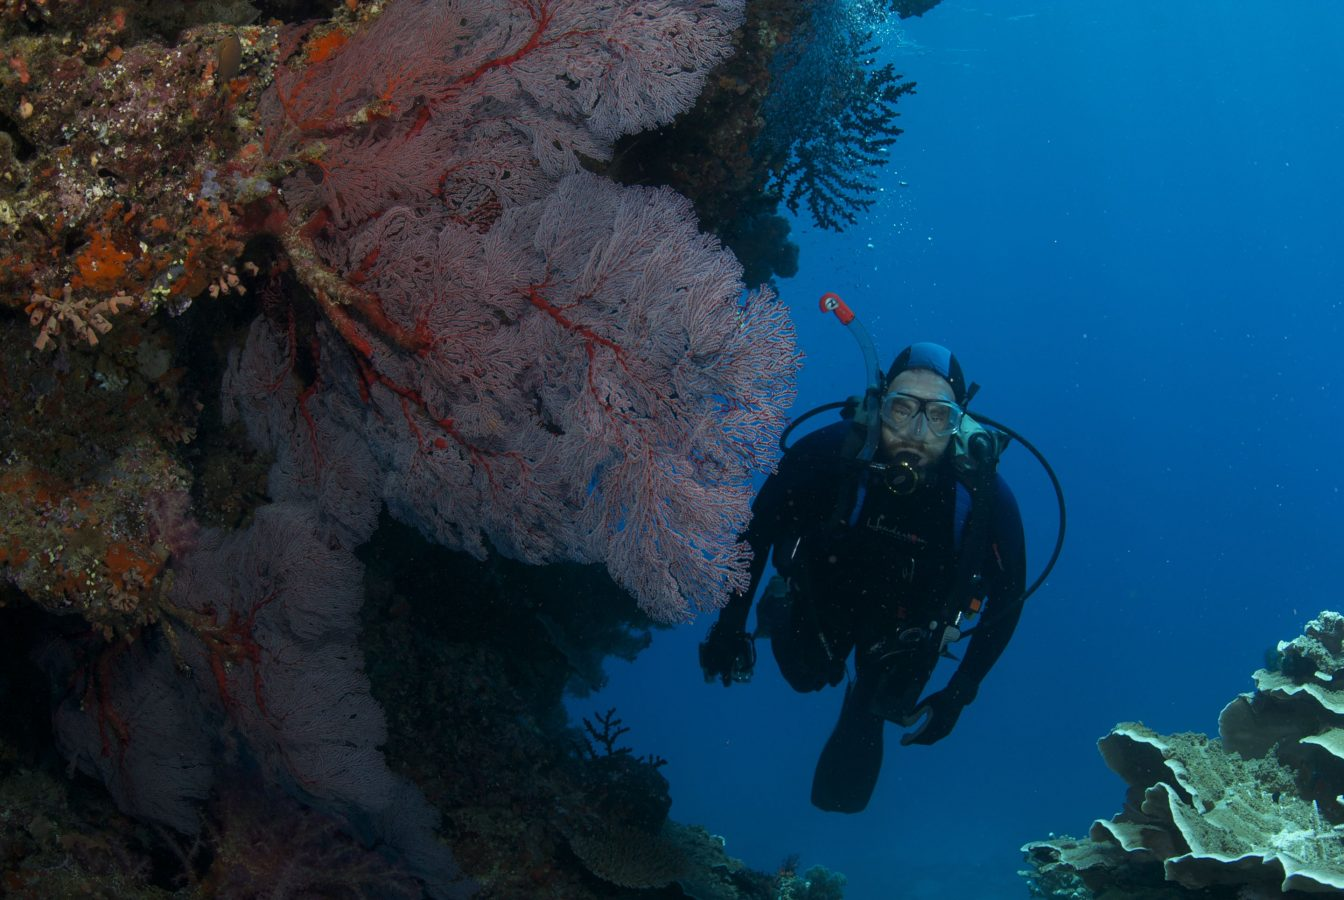 Fiji Expedition diver